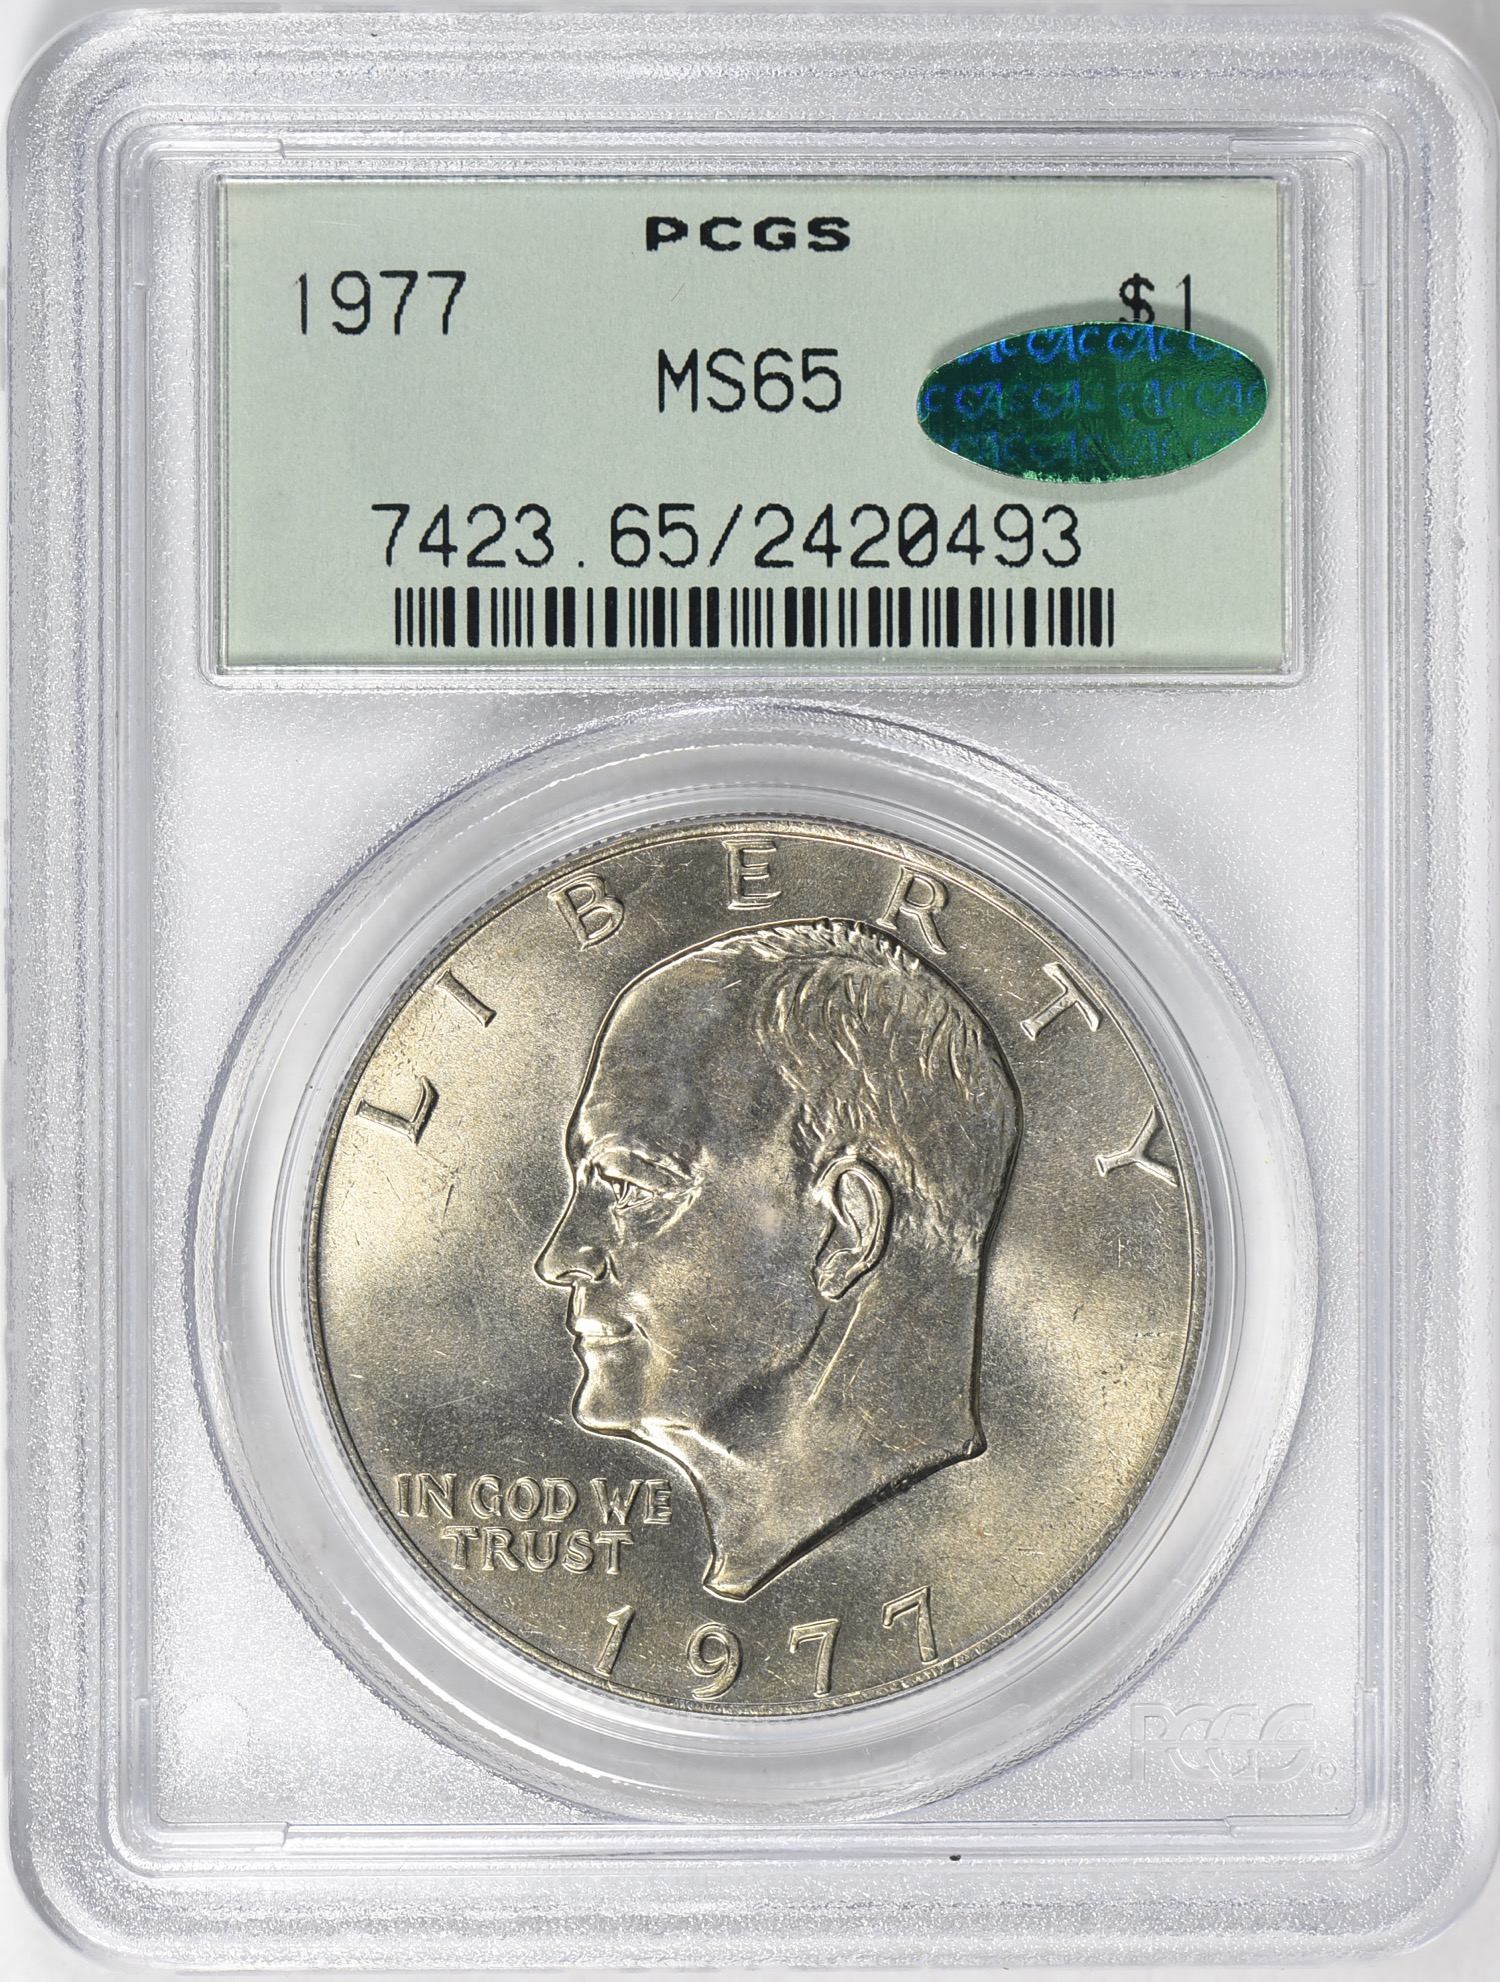 1977 MS65 CAC OGH - Acquired 5.19.19 GreatCollections. Ike's don't win any beauty contests but still garner substantial collector interest. This is for my 20th Century Gem CAC OGH type set.